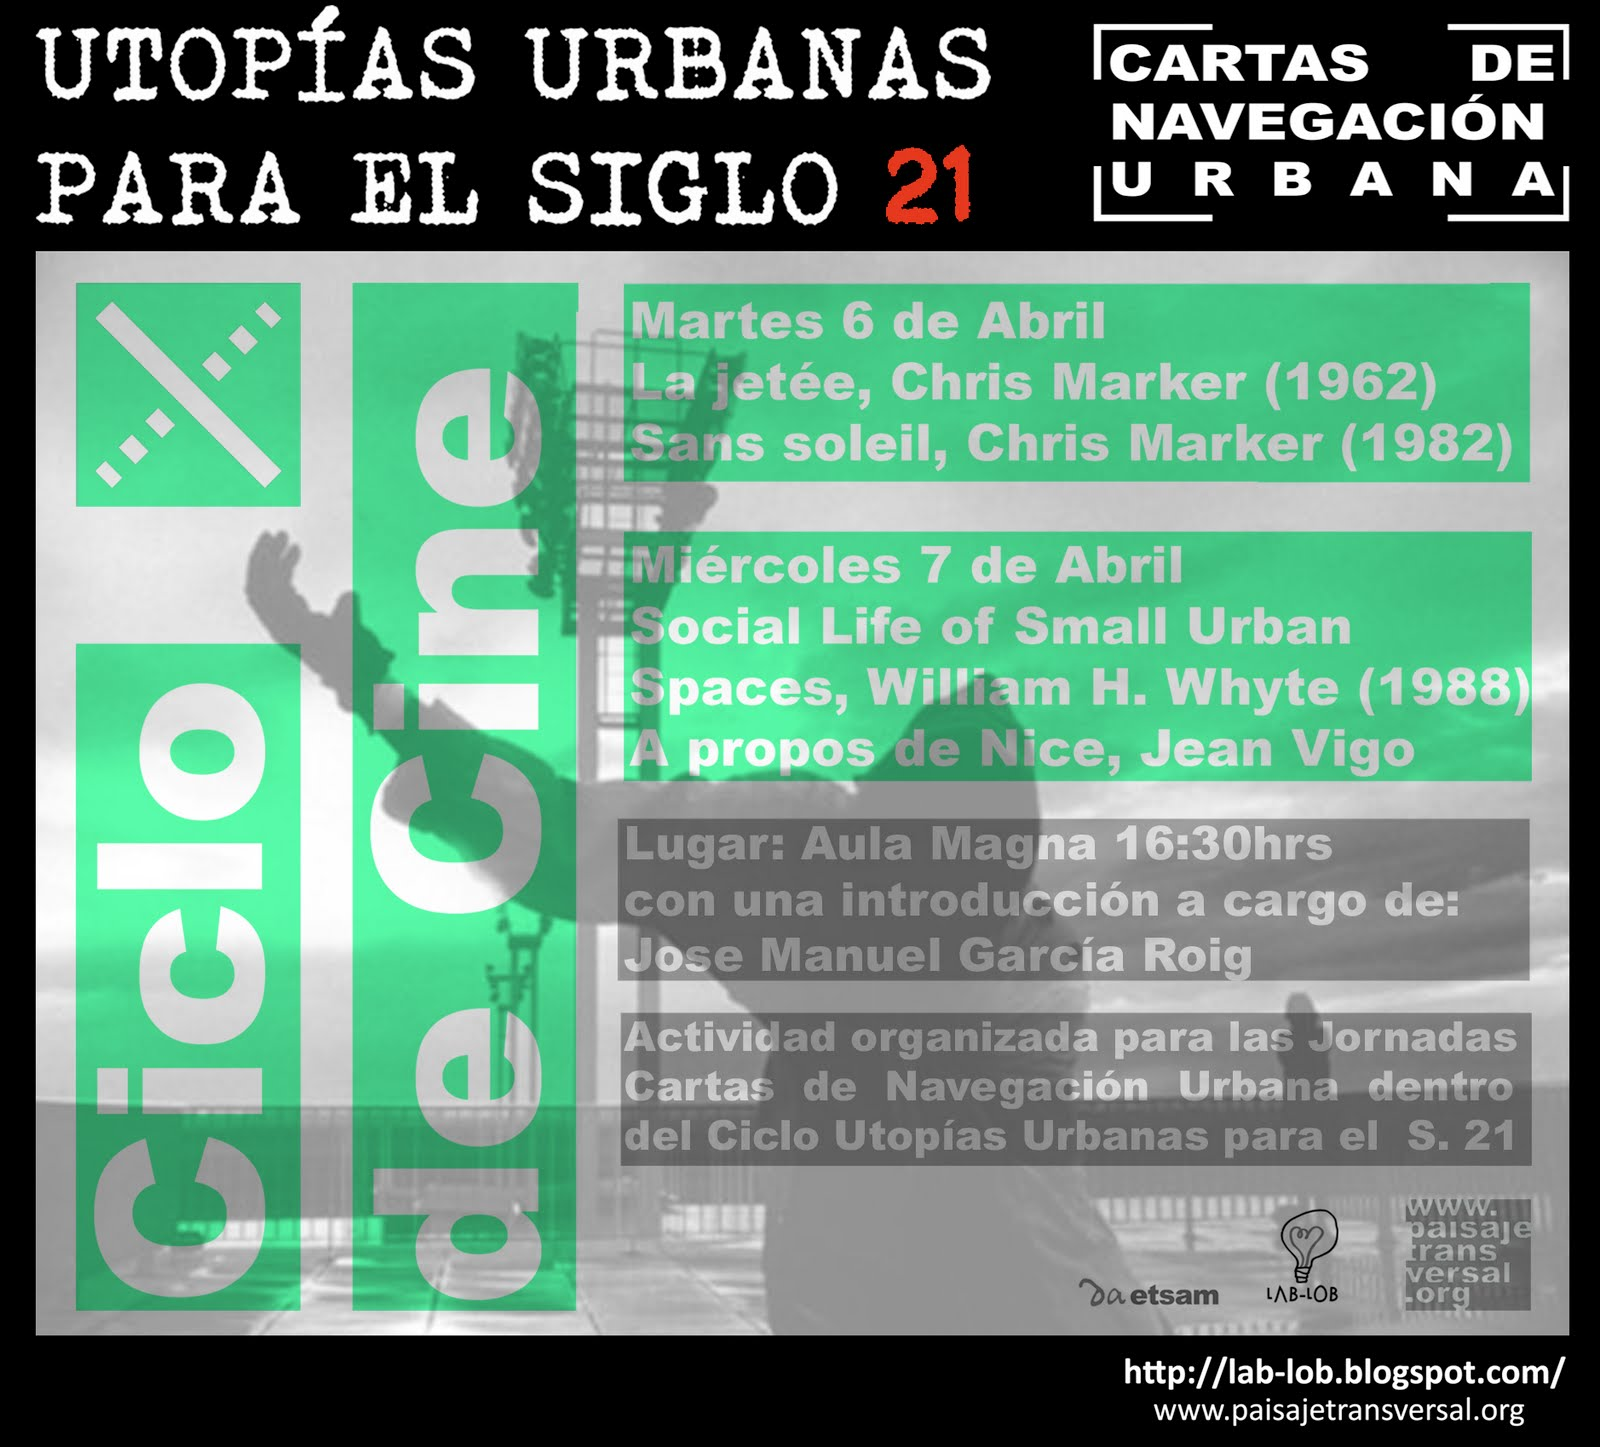 Cartas de navegaci n urbana madrid free - William whyte the social life of small urban spaces model ...